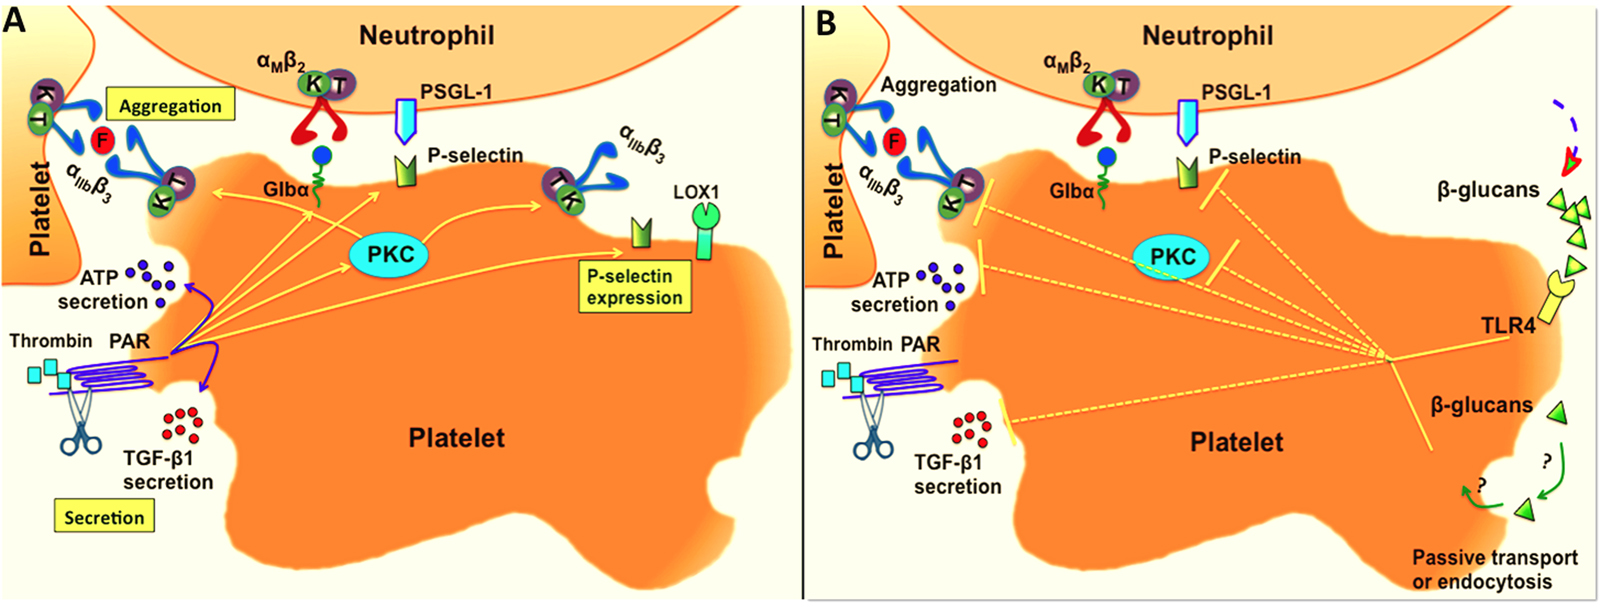 Schematic overview showing the effect of glucan fractions on platelet activities. Thrombin interacts